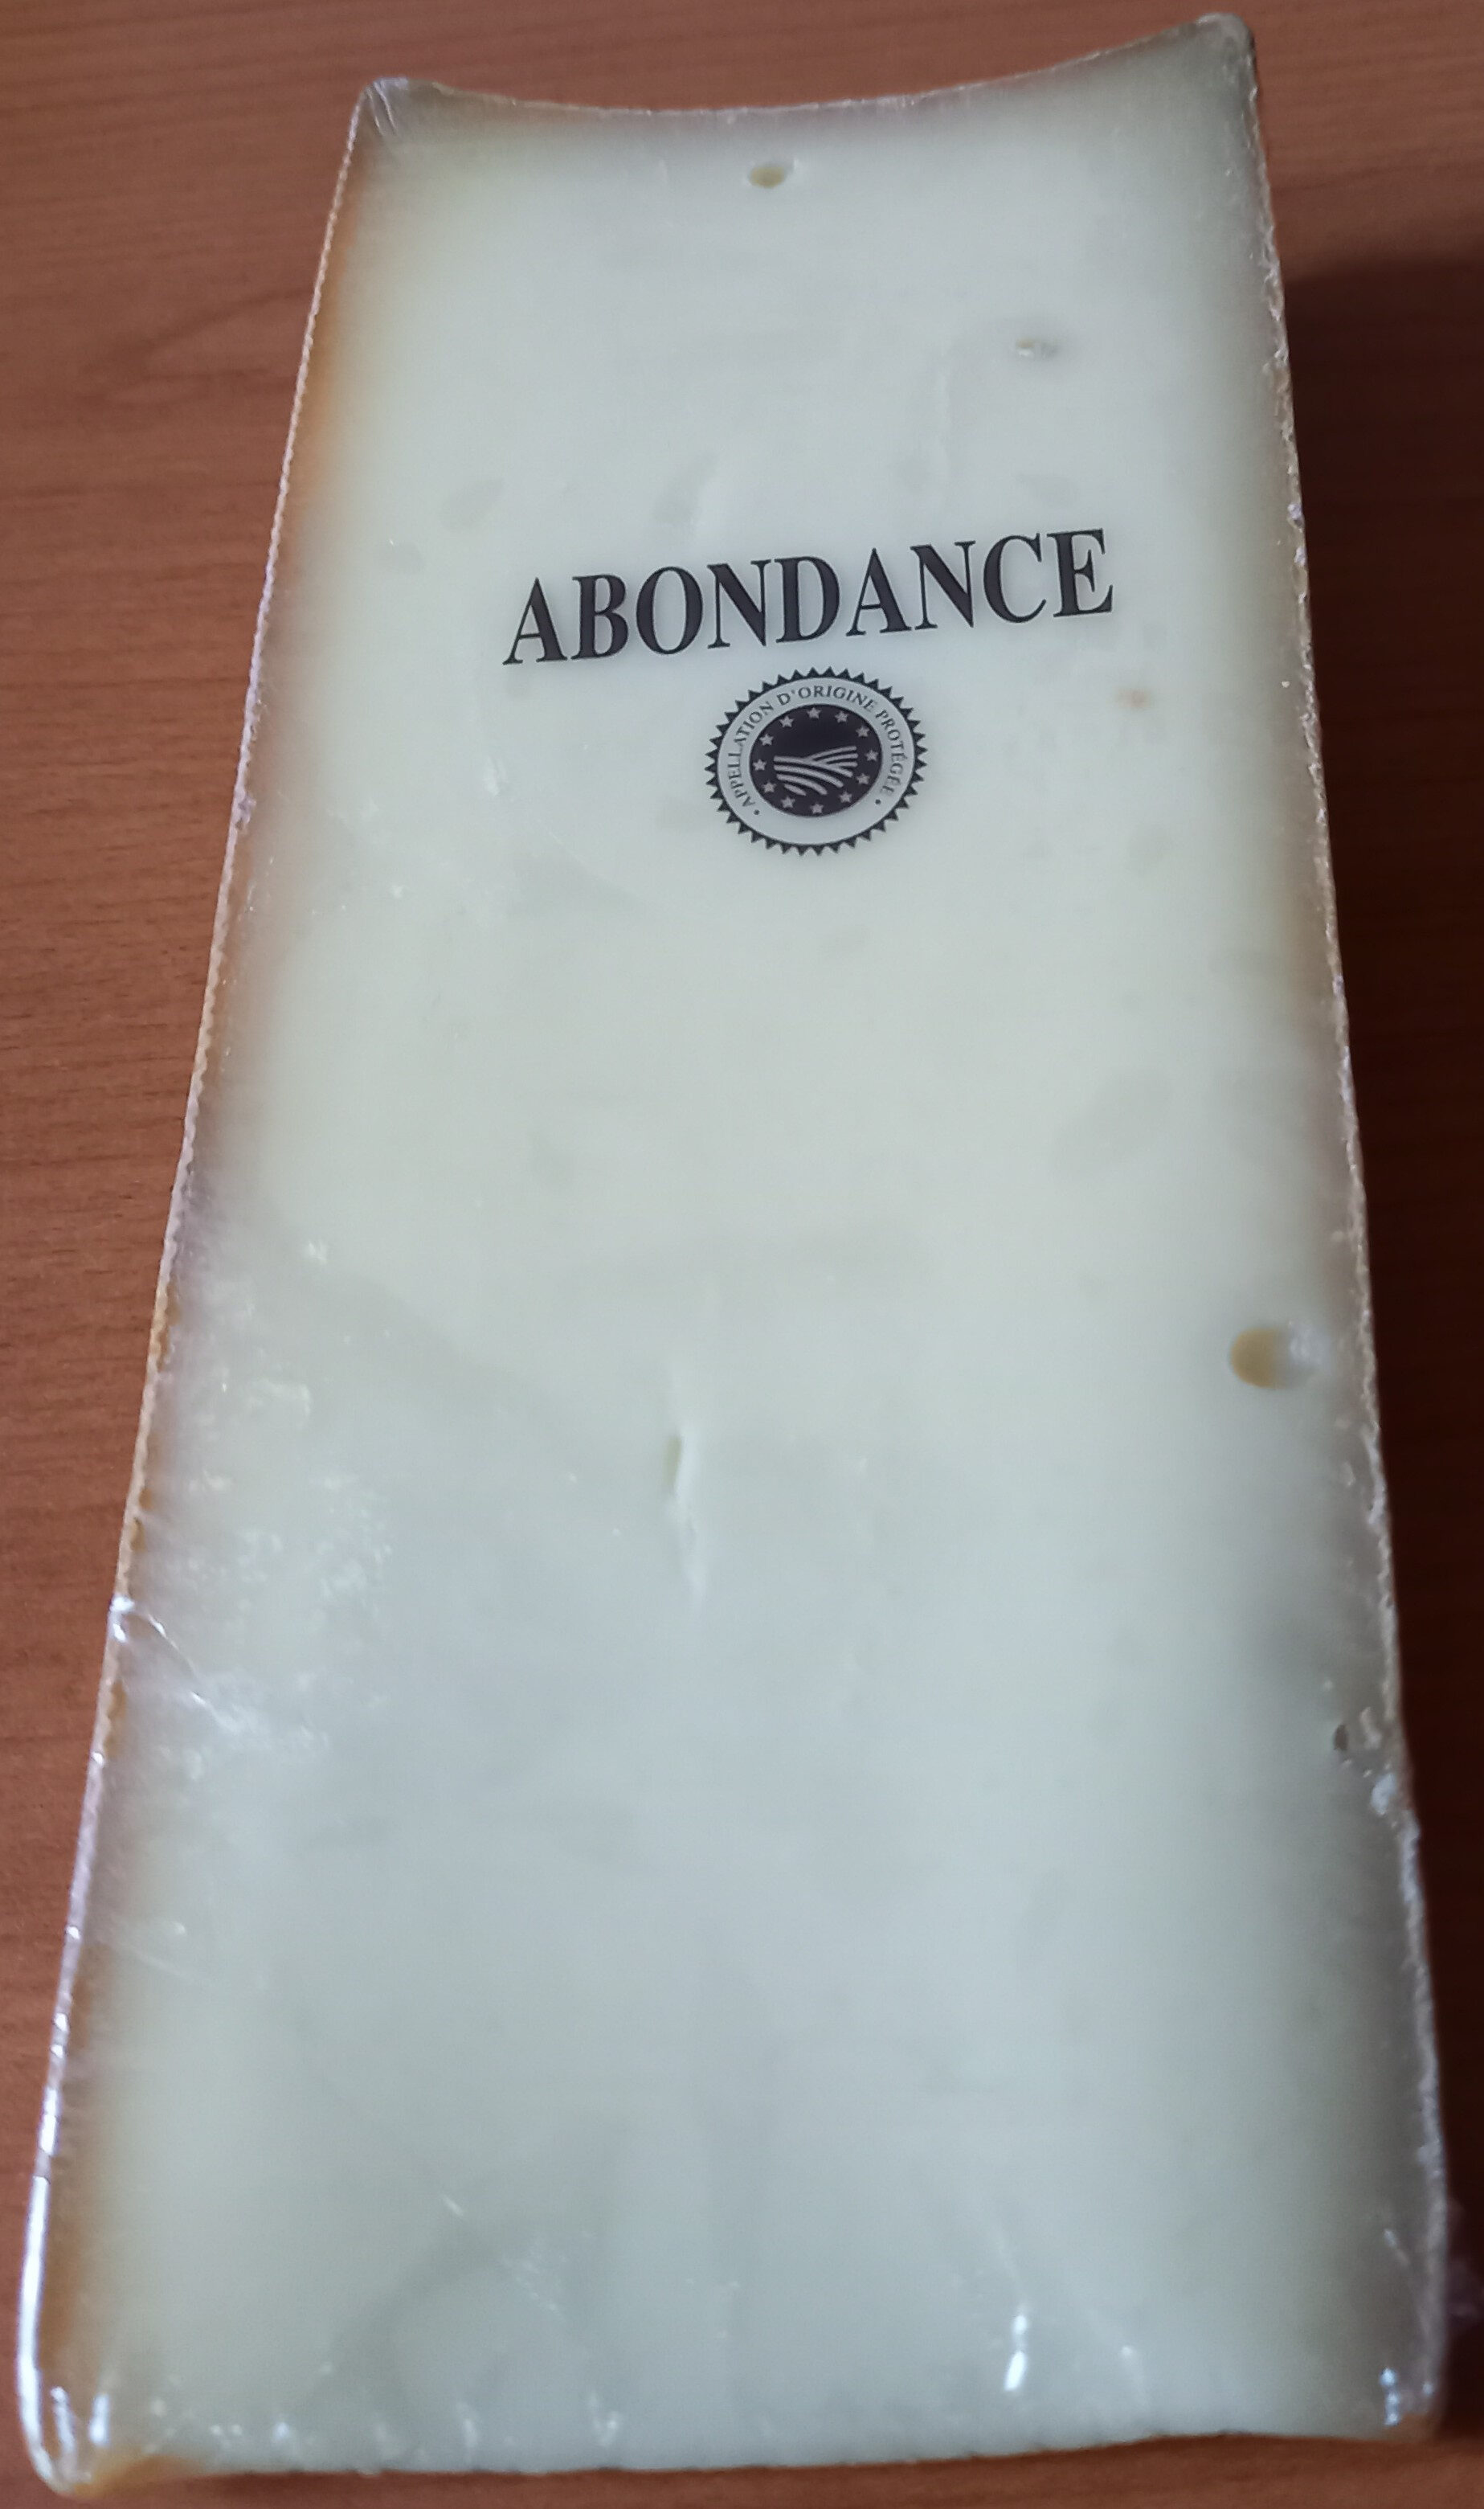 Fromage  ABONDANCE - Product - fr